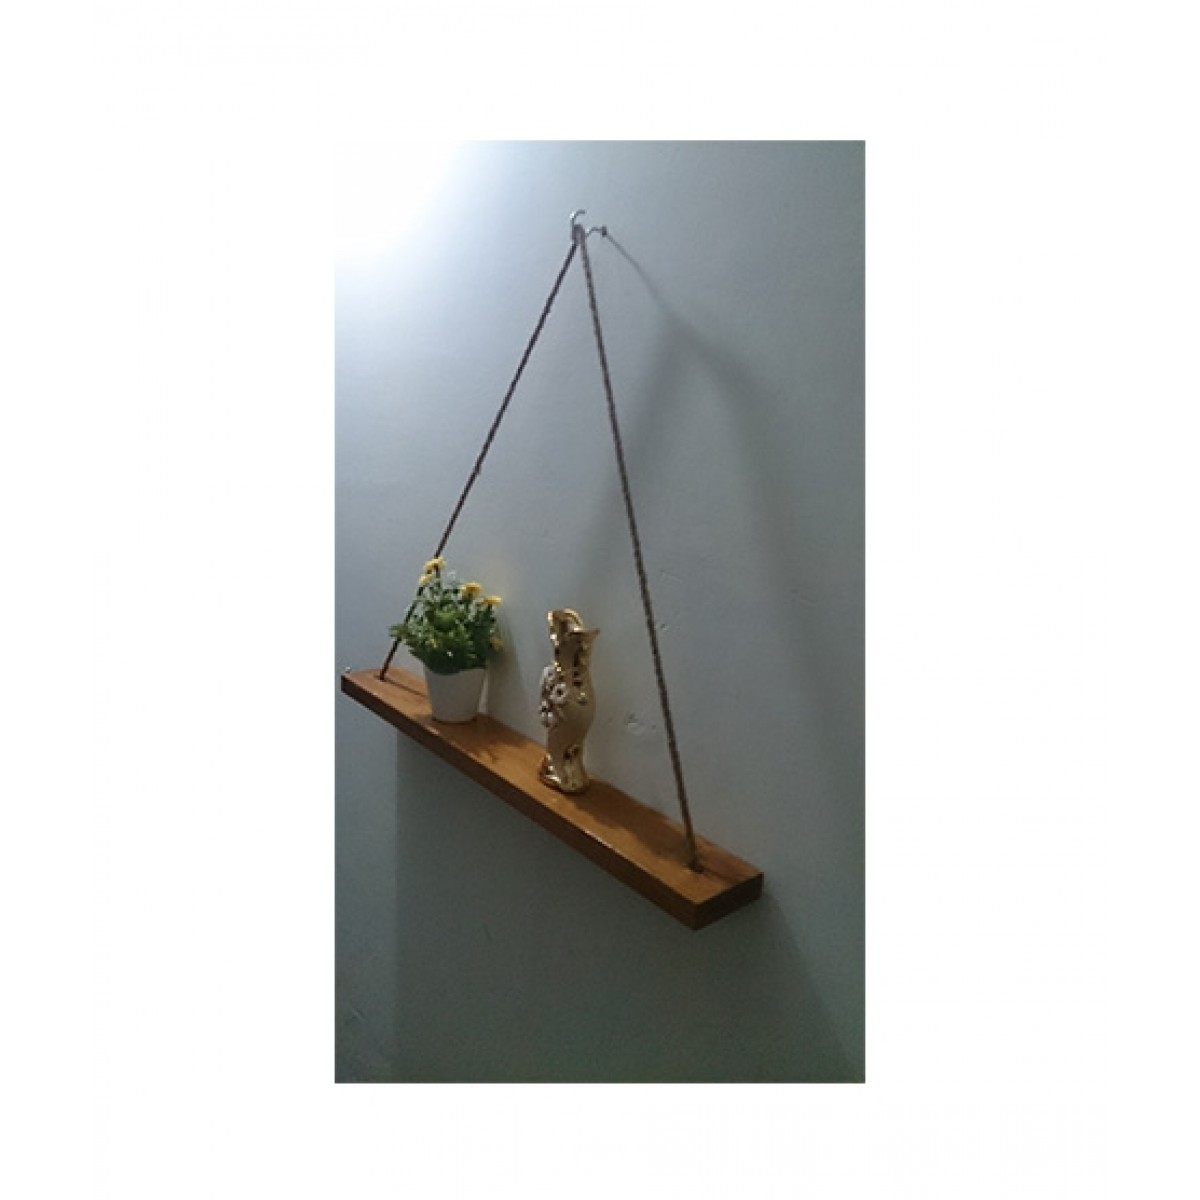 Snm Rope Hanging Wall Shelf Price In Pakistan Buy Snm Rope Hanging